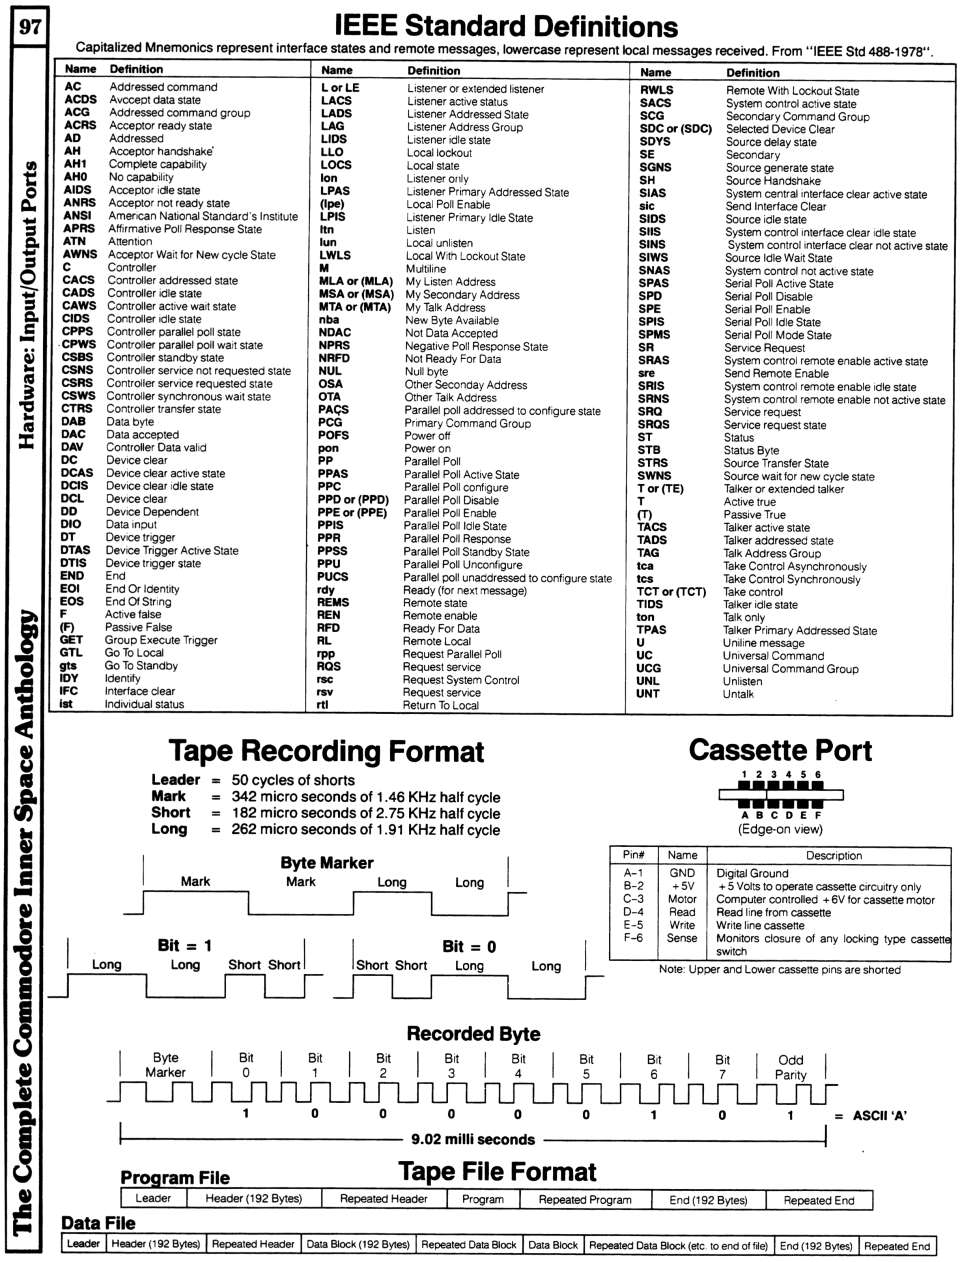 [960�1262 Hardware Section: Tape Recording Format, Cassette Port, IEEE Standard Definitions]